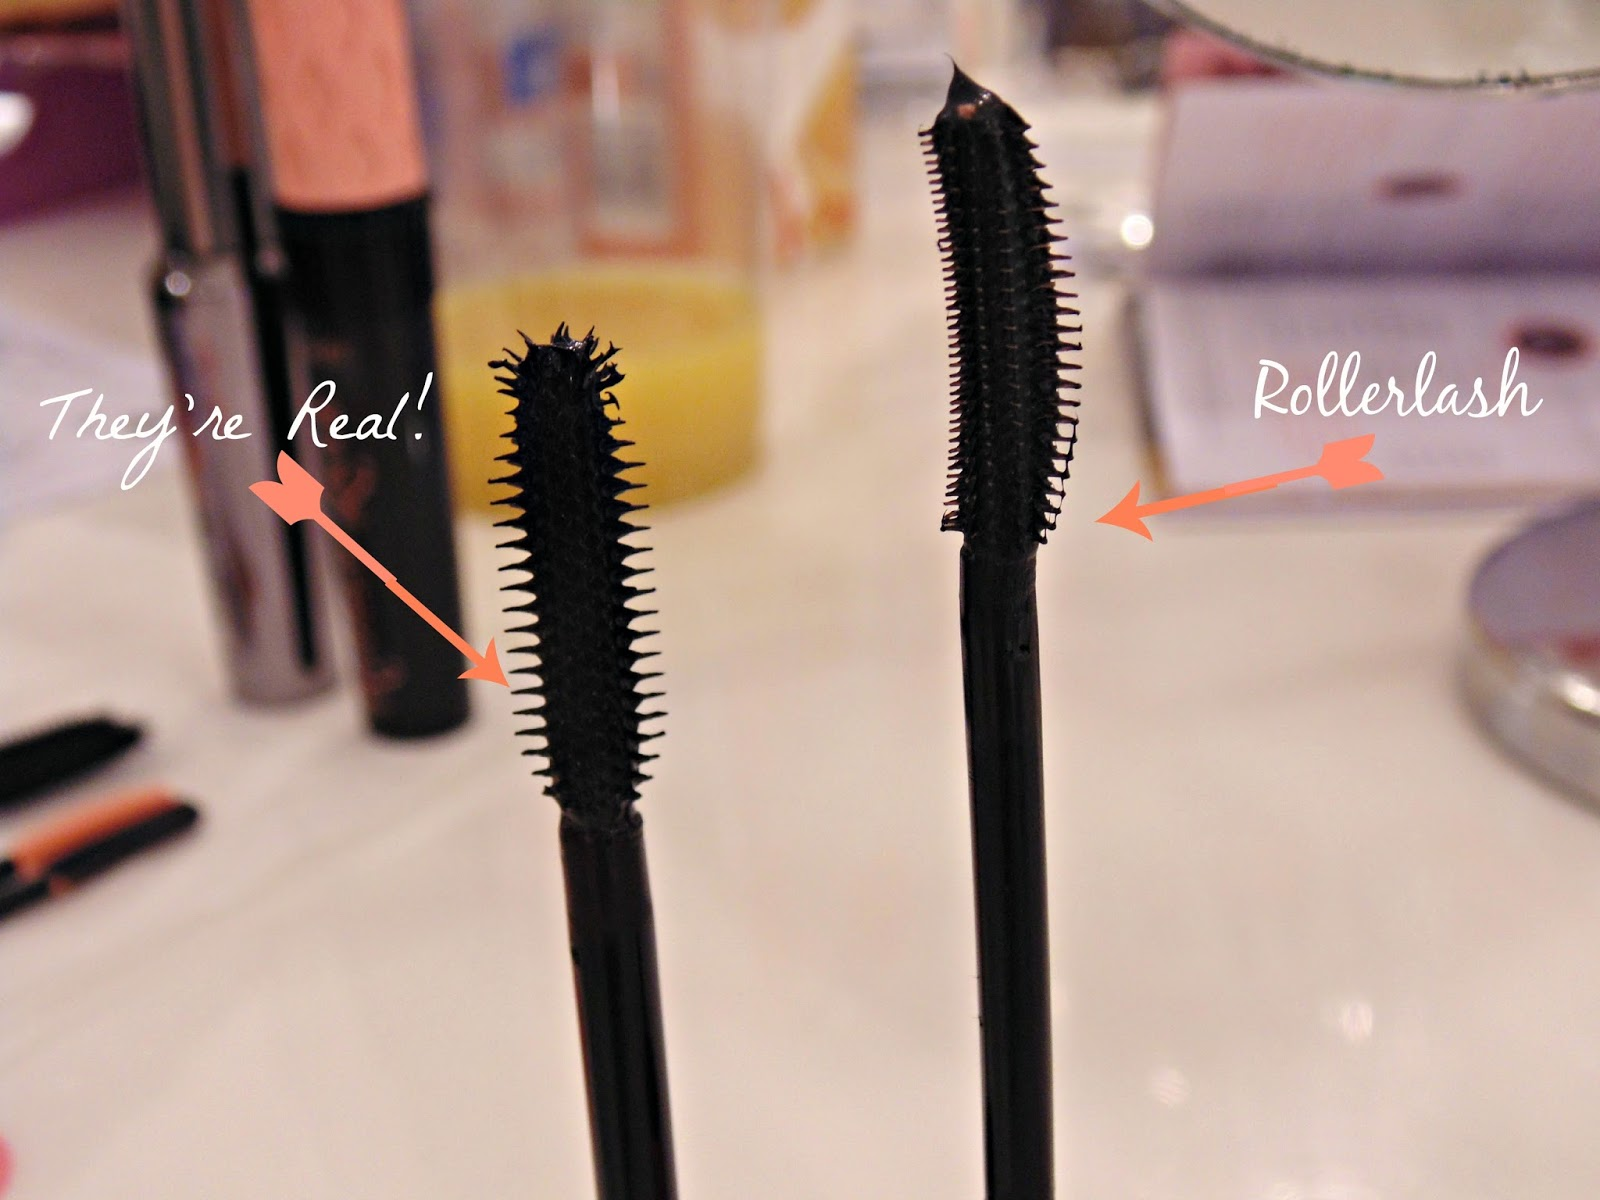 b3f00fc749f Why have Benefit launched another mascara when they already have the  world's fastest selling with 'They're Real!' I hear you ask?